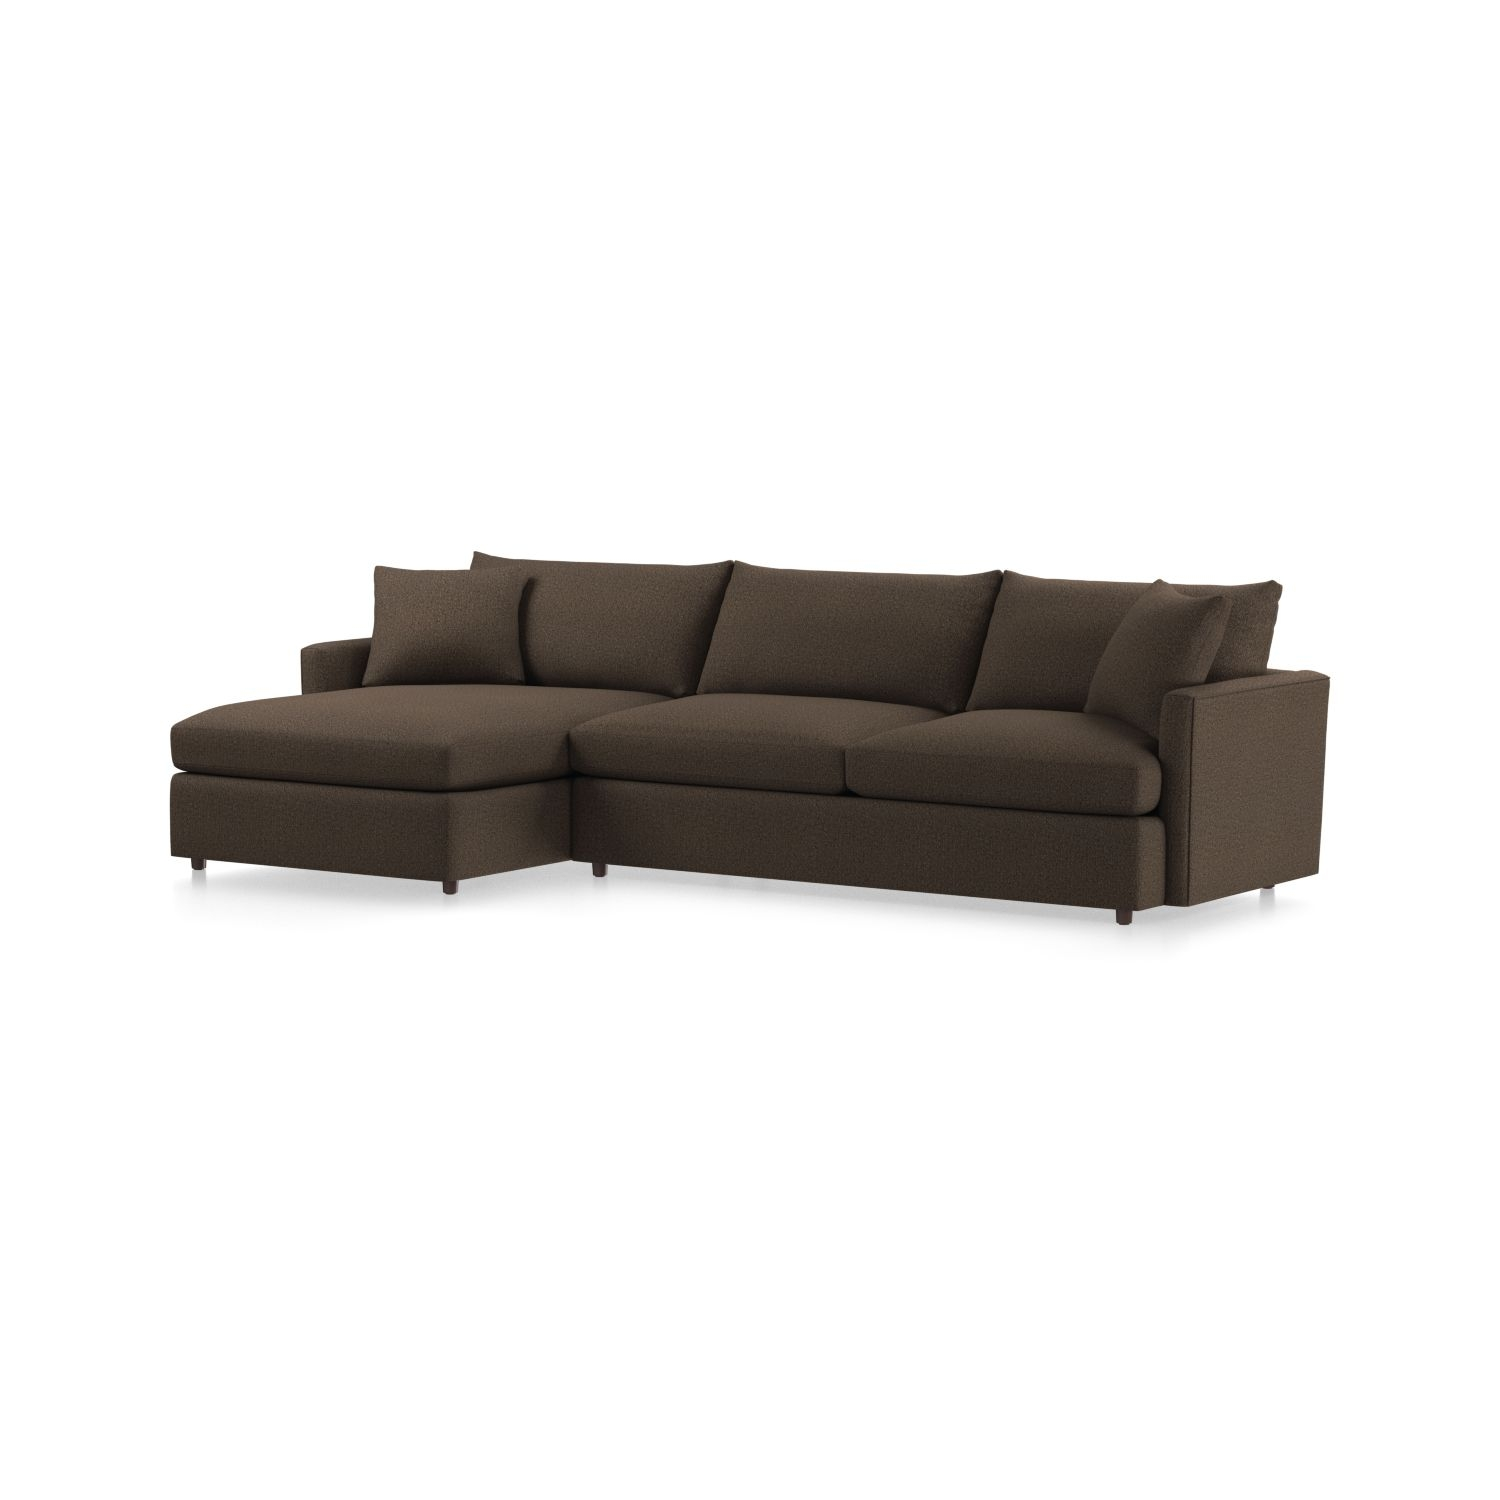 Lounge Ii Petite Sectional Sofa + Reviews | Crate And Barrel intended for Elm Grande Ii 2 Piece Sectionals (Image 19 of 30)